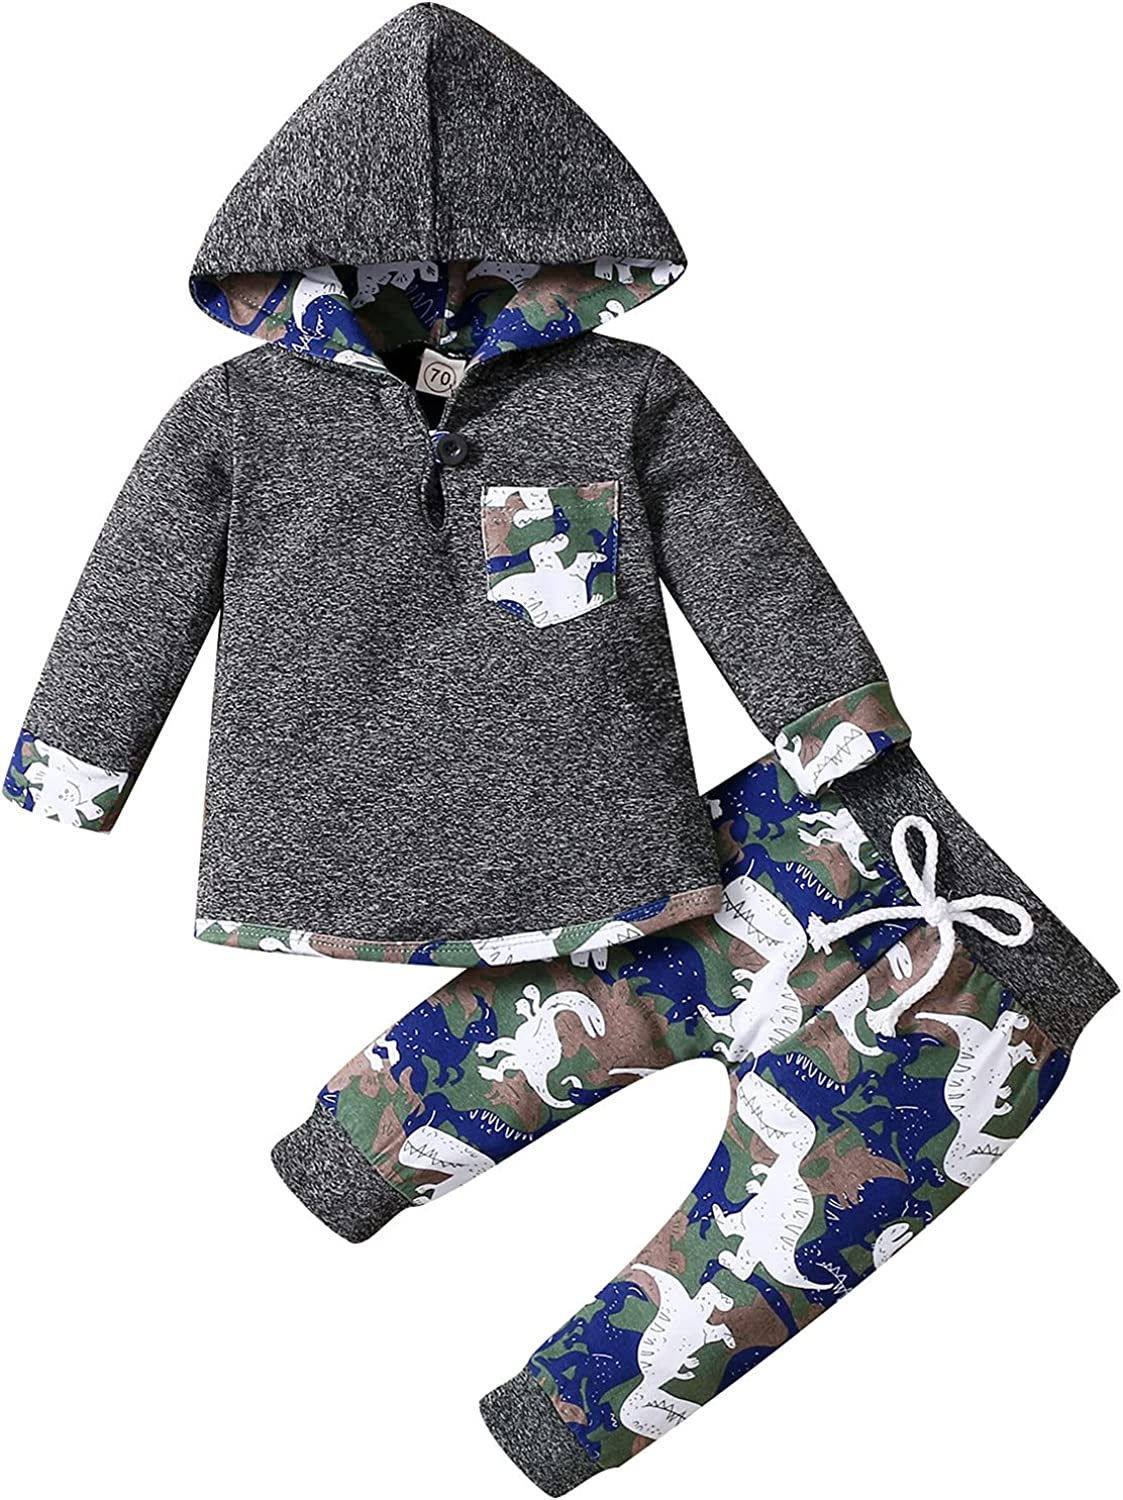 Newborn Baby Boy Clothes Infant Long Sleeve Hoodie Tops Dinosaur Print Pants Fall Winter 2pcs Outfit Set